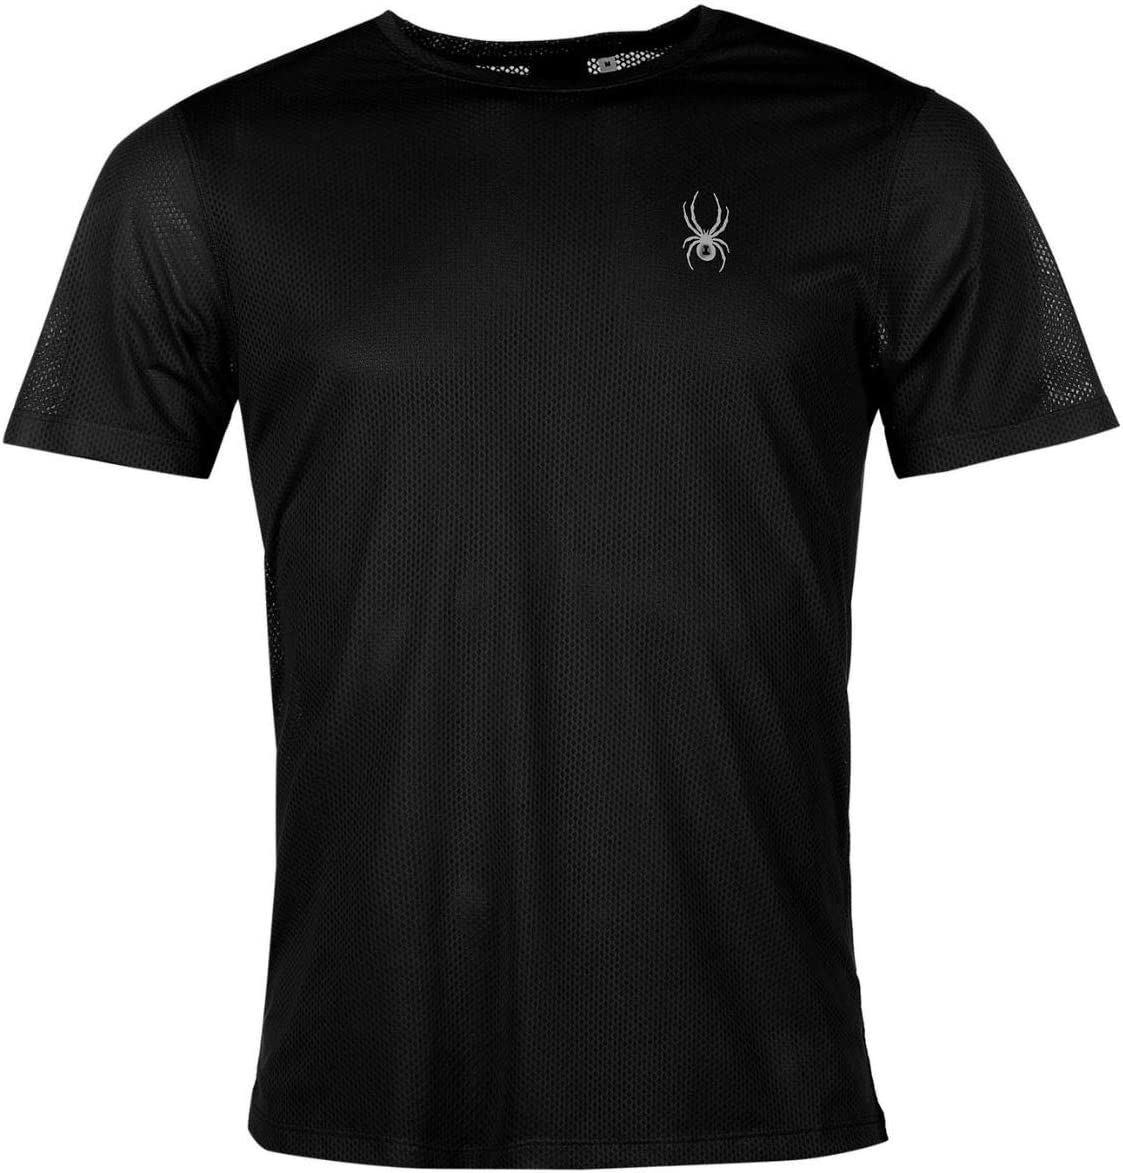 Spyder Alpine Men's T-Shirt Black/Silver All Sizes New with Label ...